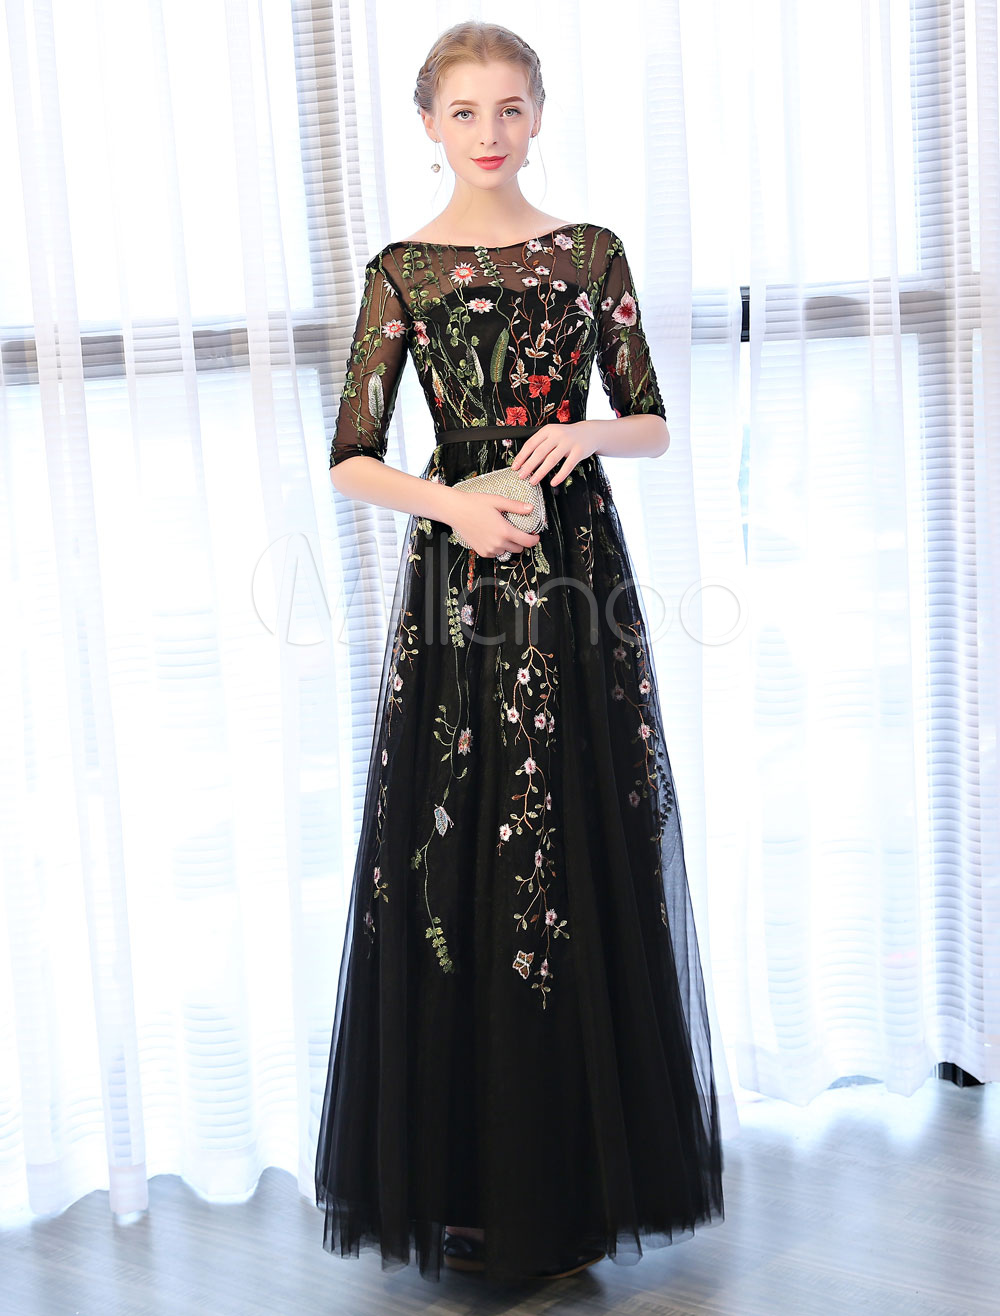 13789355554 ... Backless Half Sleeve Floral Embroidered Tulle Floor Length Occasion  Party Dress-No. 12. 32%OFF. Color Black